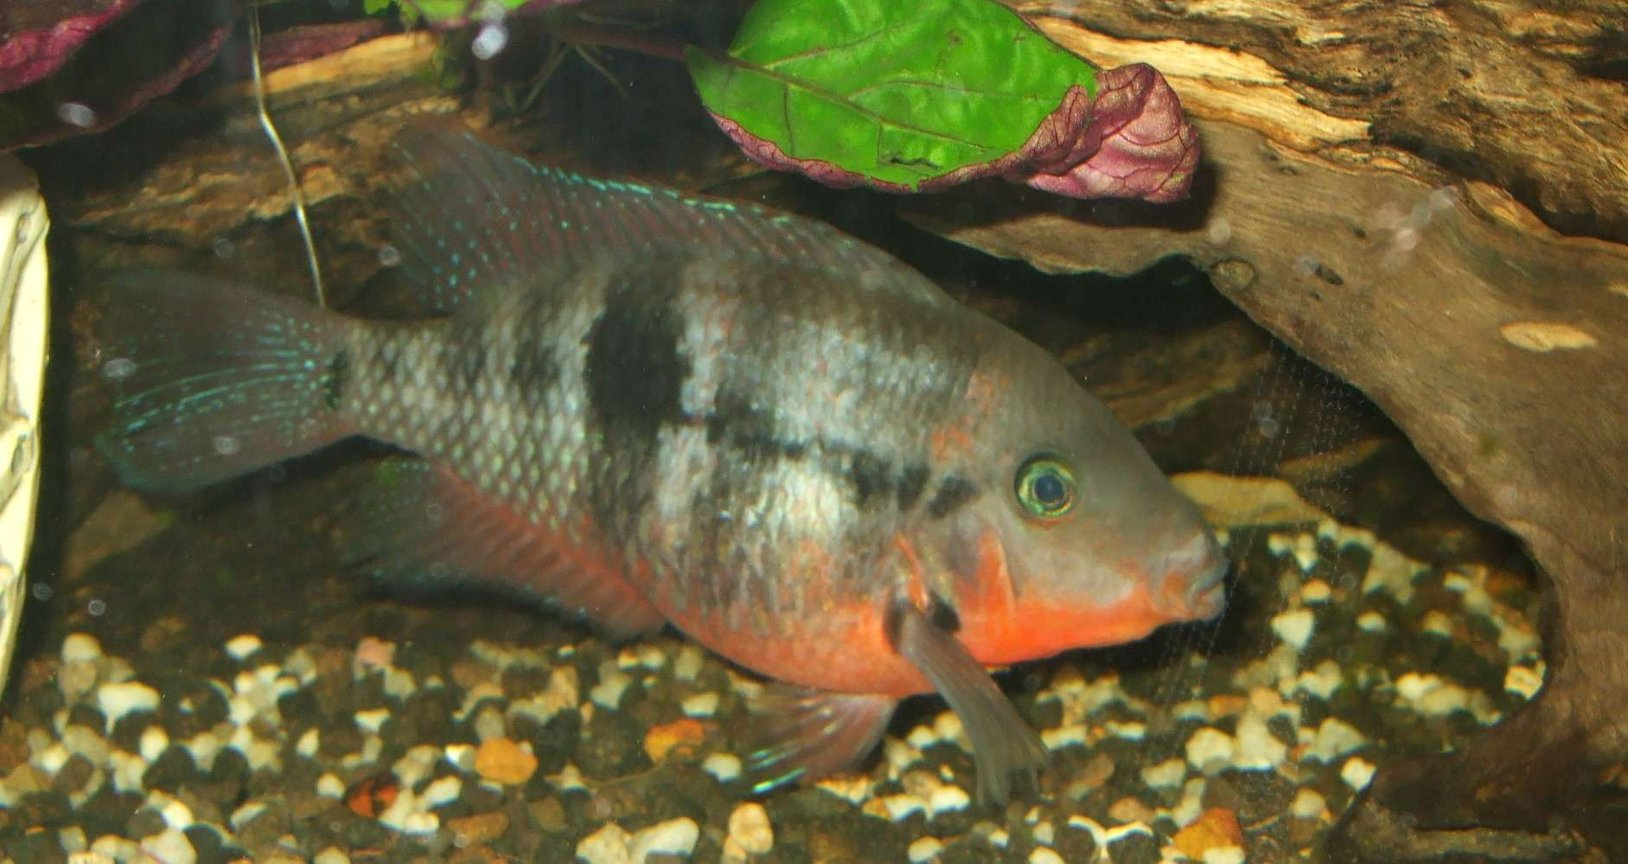 freshwater fish - thorichthys meeki - firemouth cichlid stocking in 90 gallons tank - firemouth also got killed from idiot pouring beer in my tank